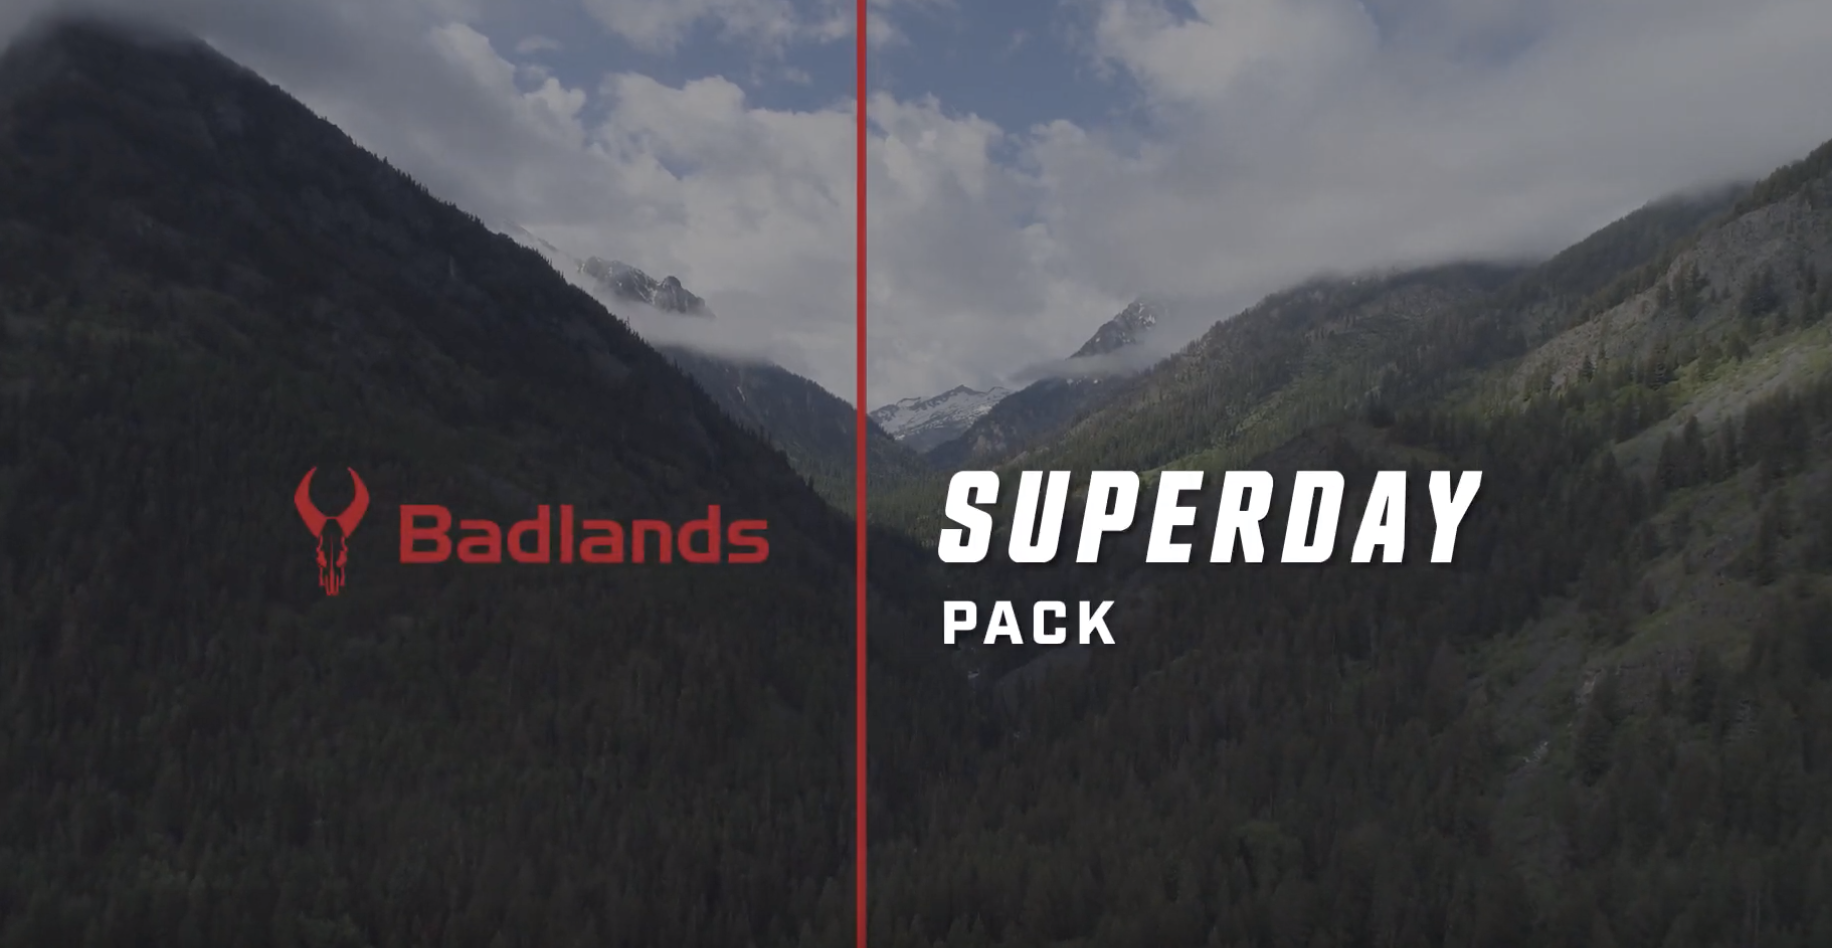 Learn more about the Superday Pack